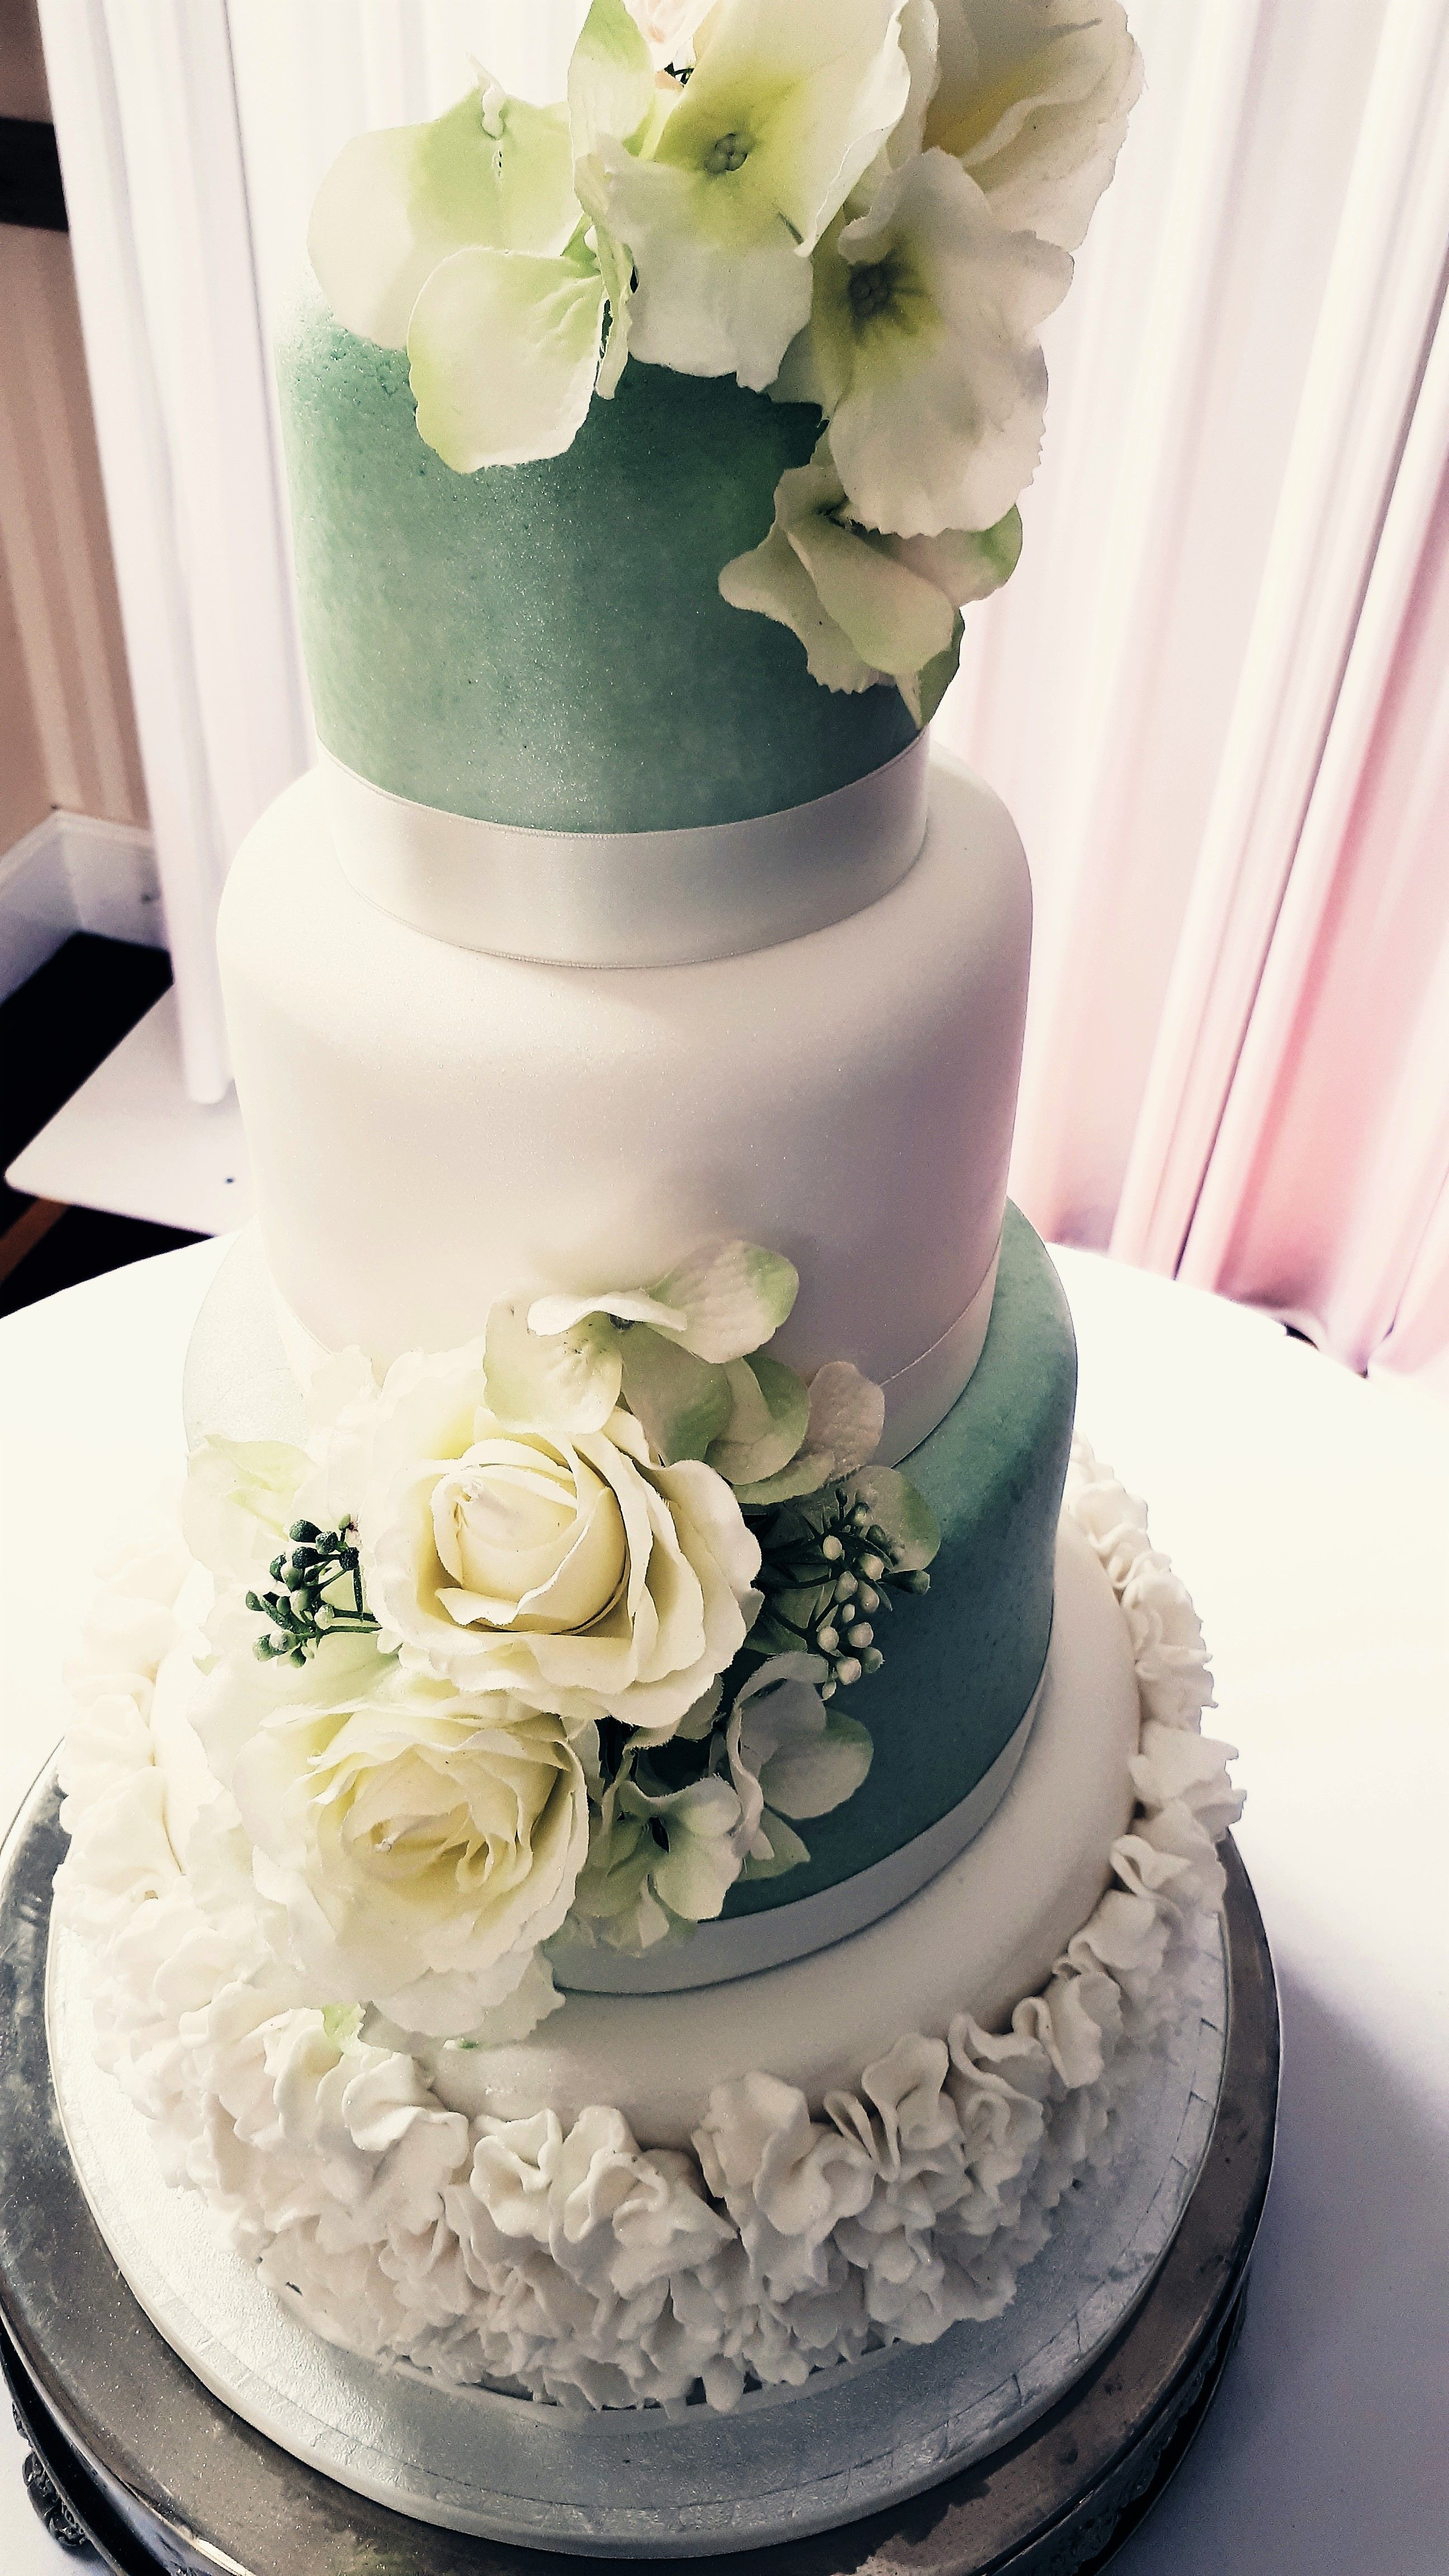 Four tier fondant covered wedding cake decorated with a